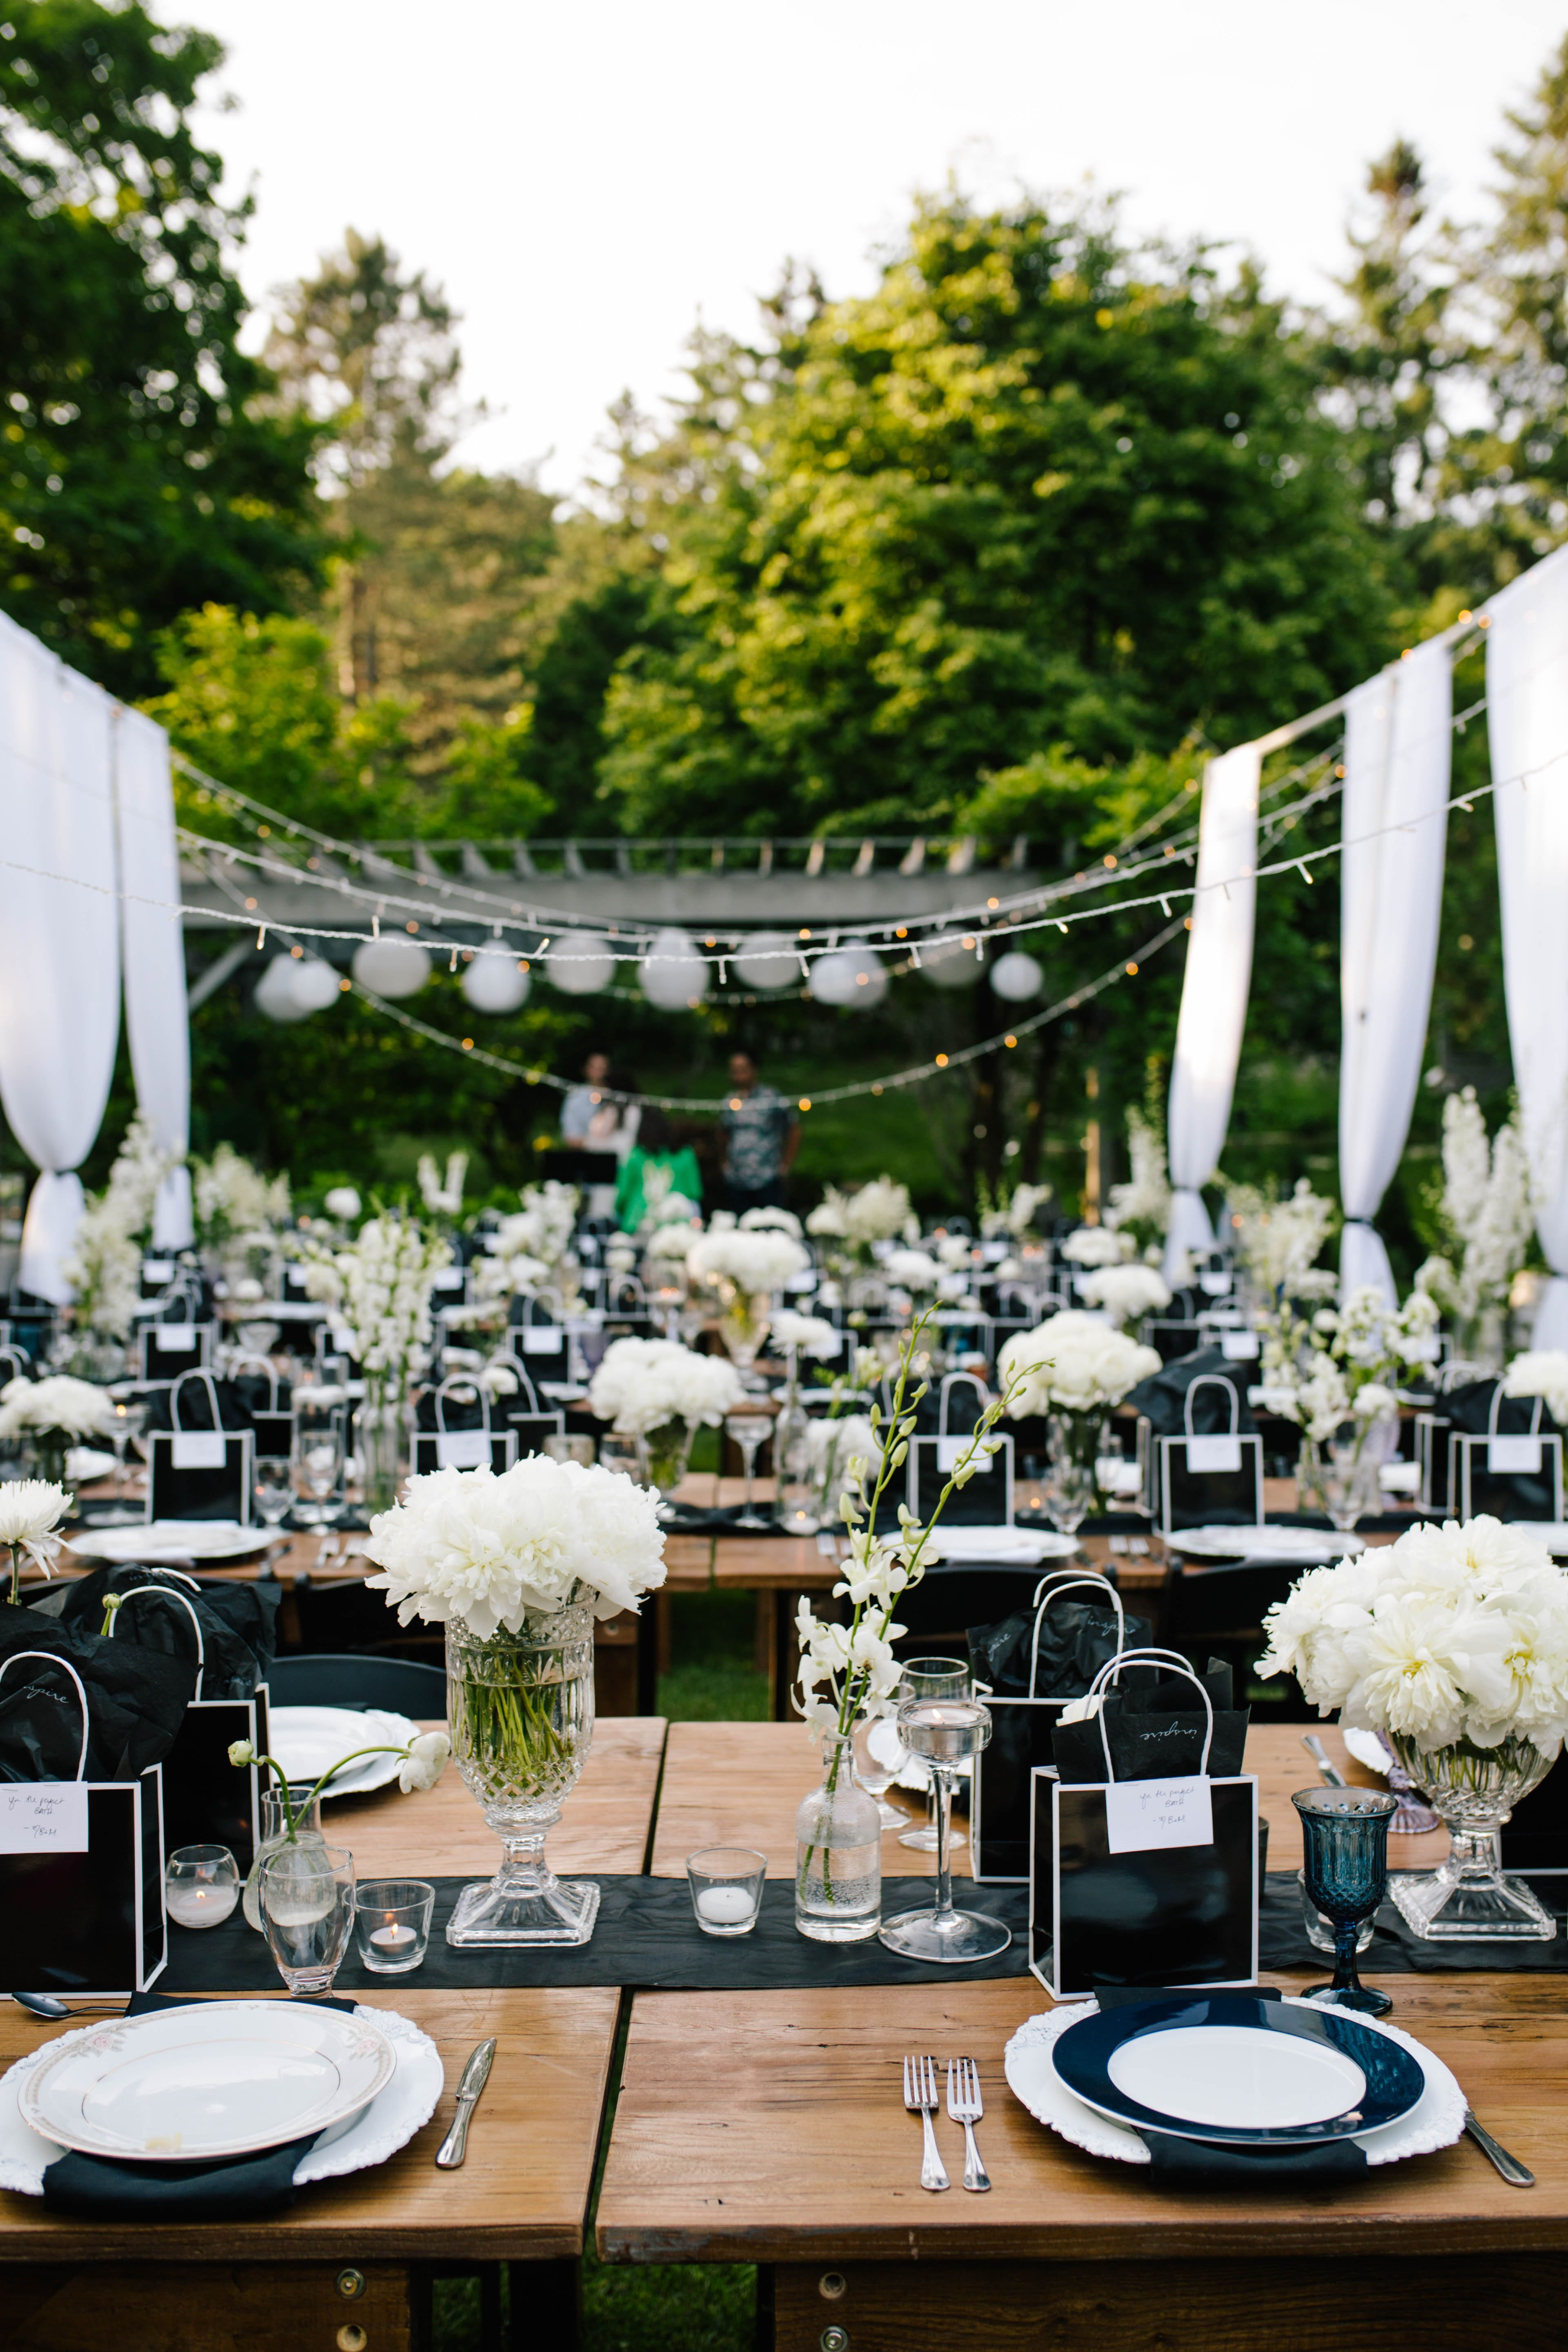 Outdoor Wedding Party Simple And Elegant Decorations White And